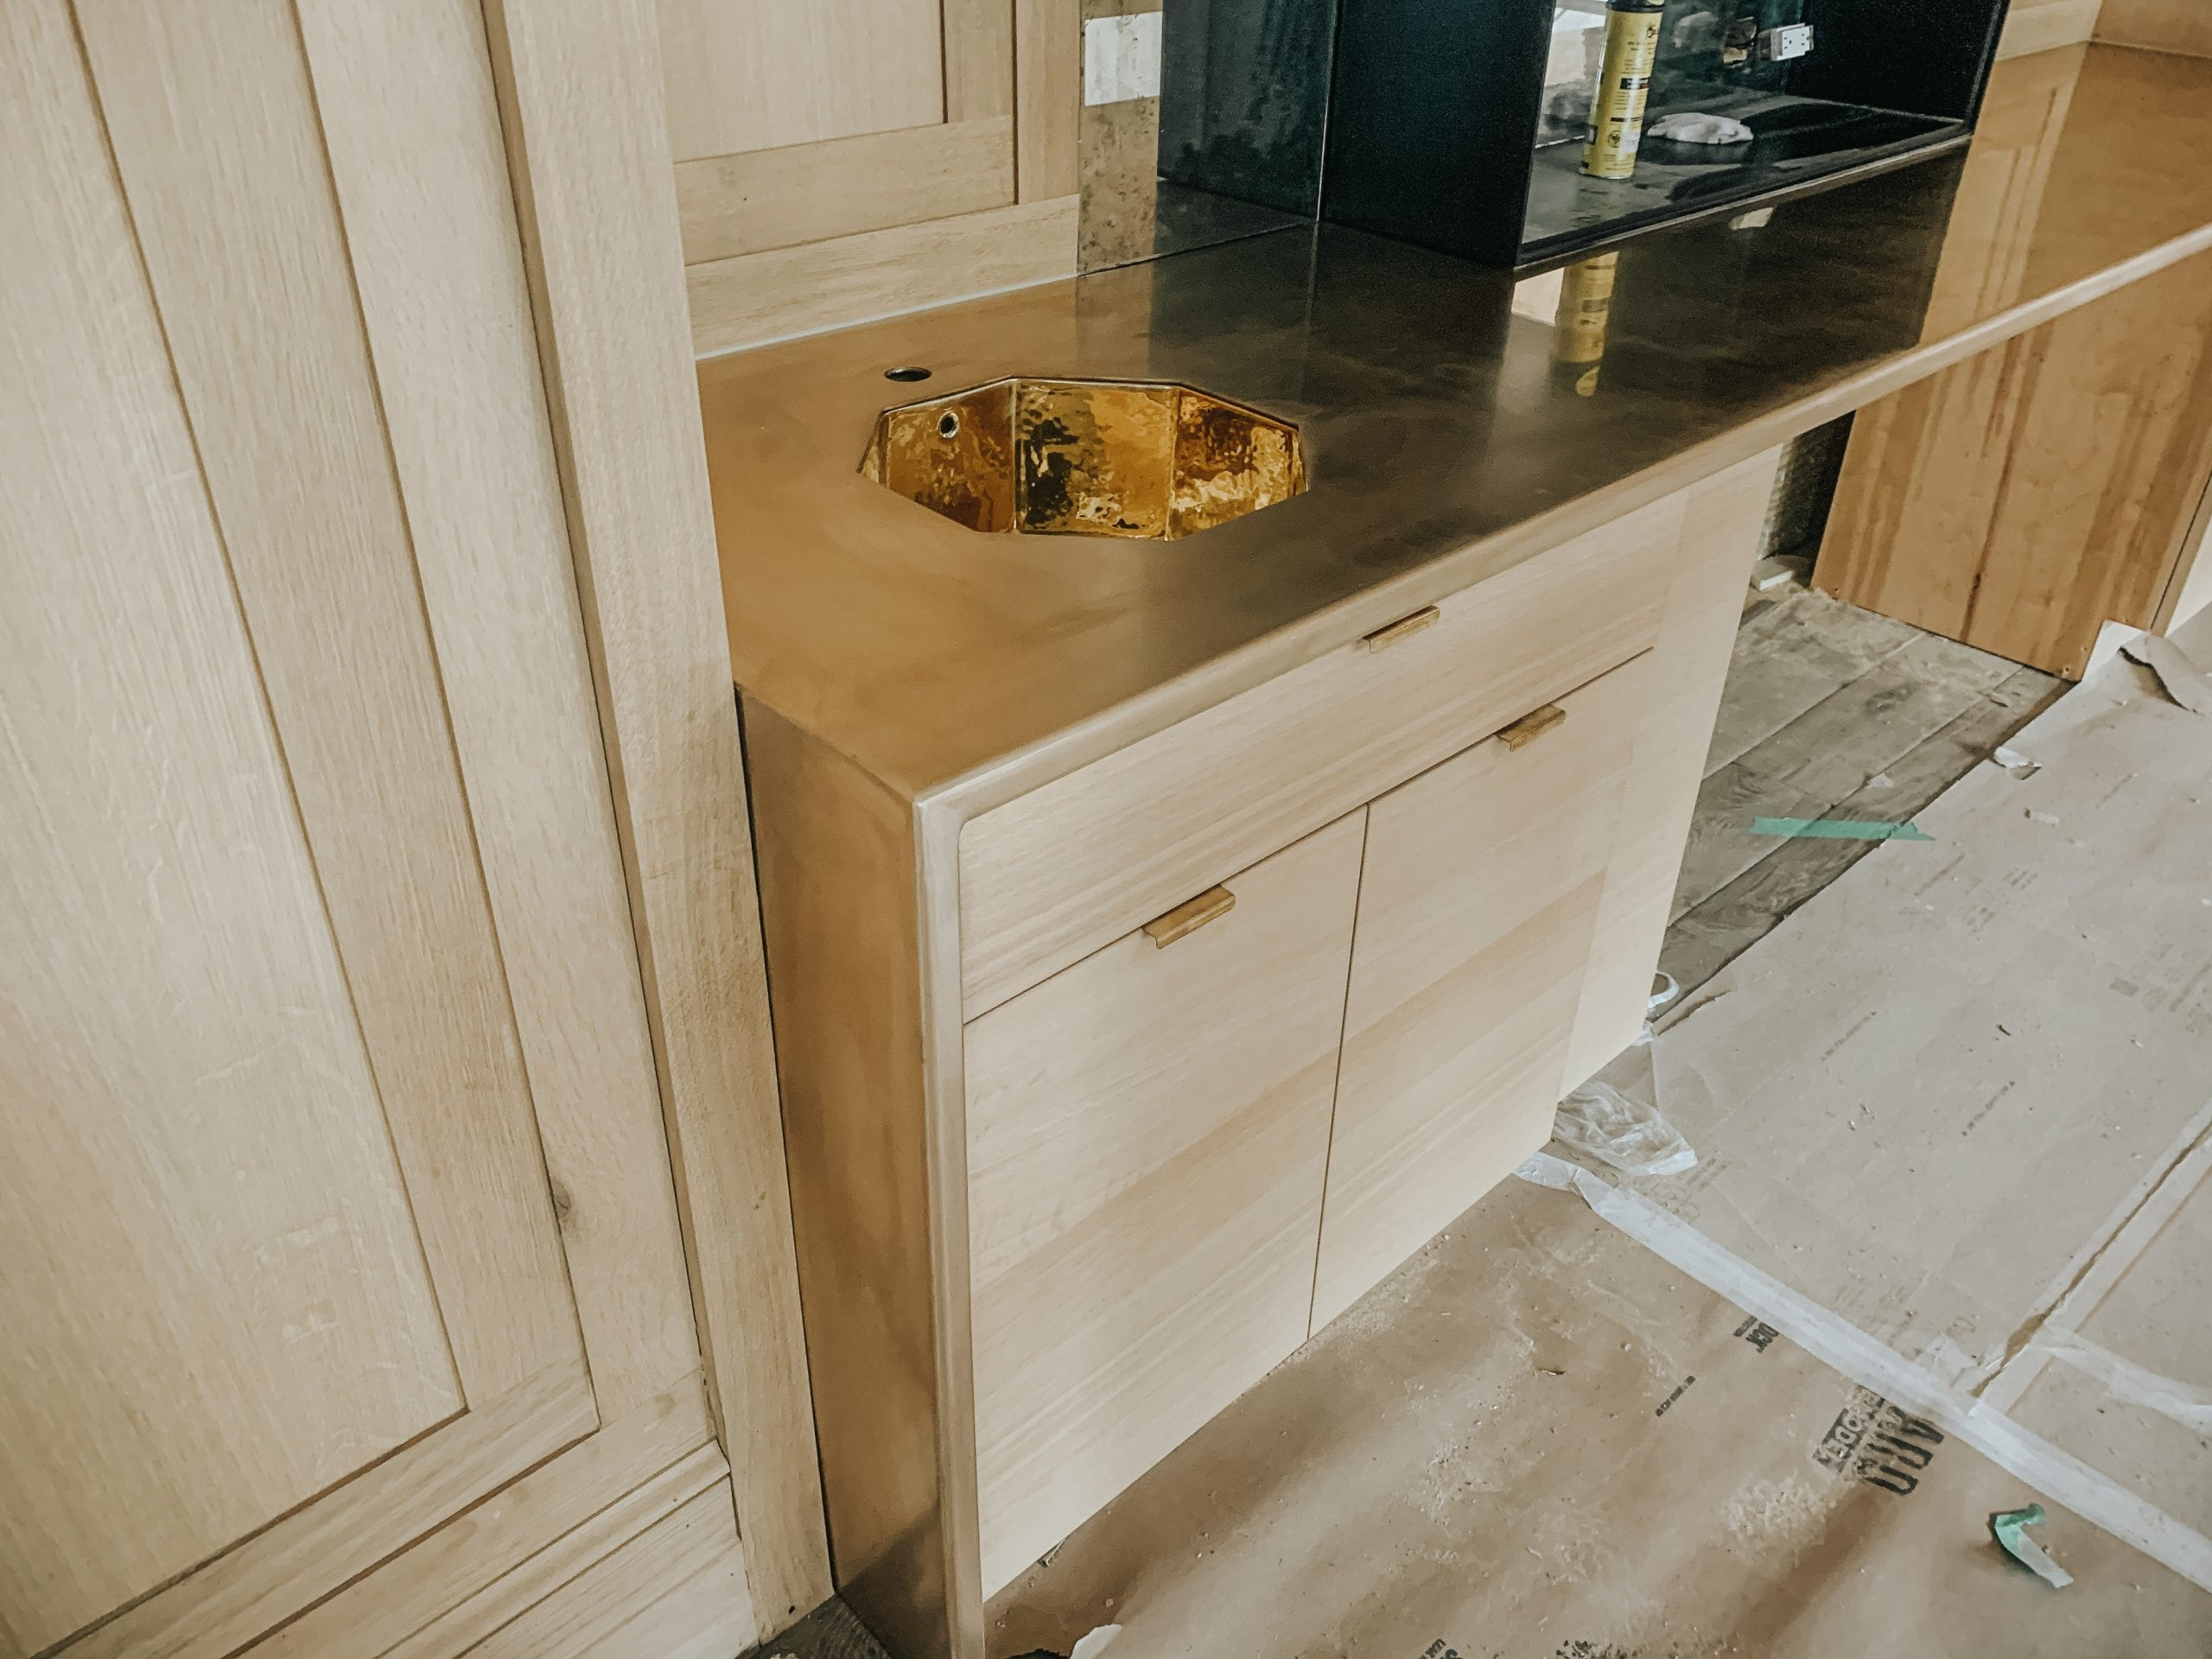 Oak Cabinets with Bronze Countertop